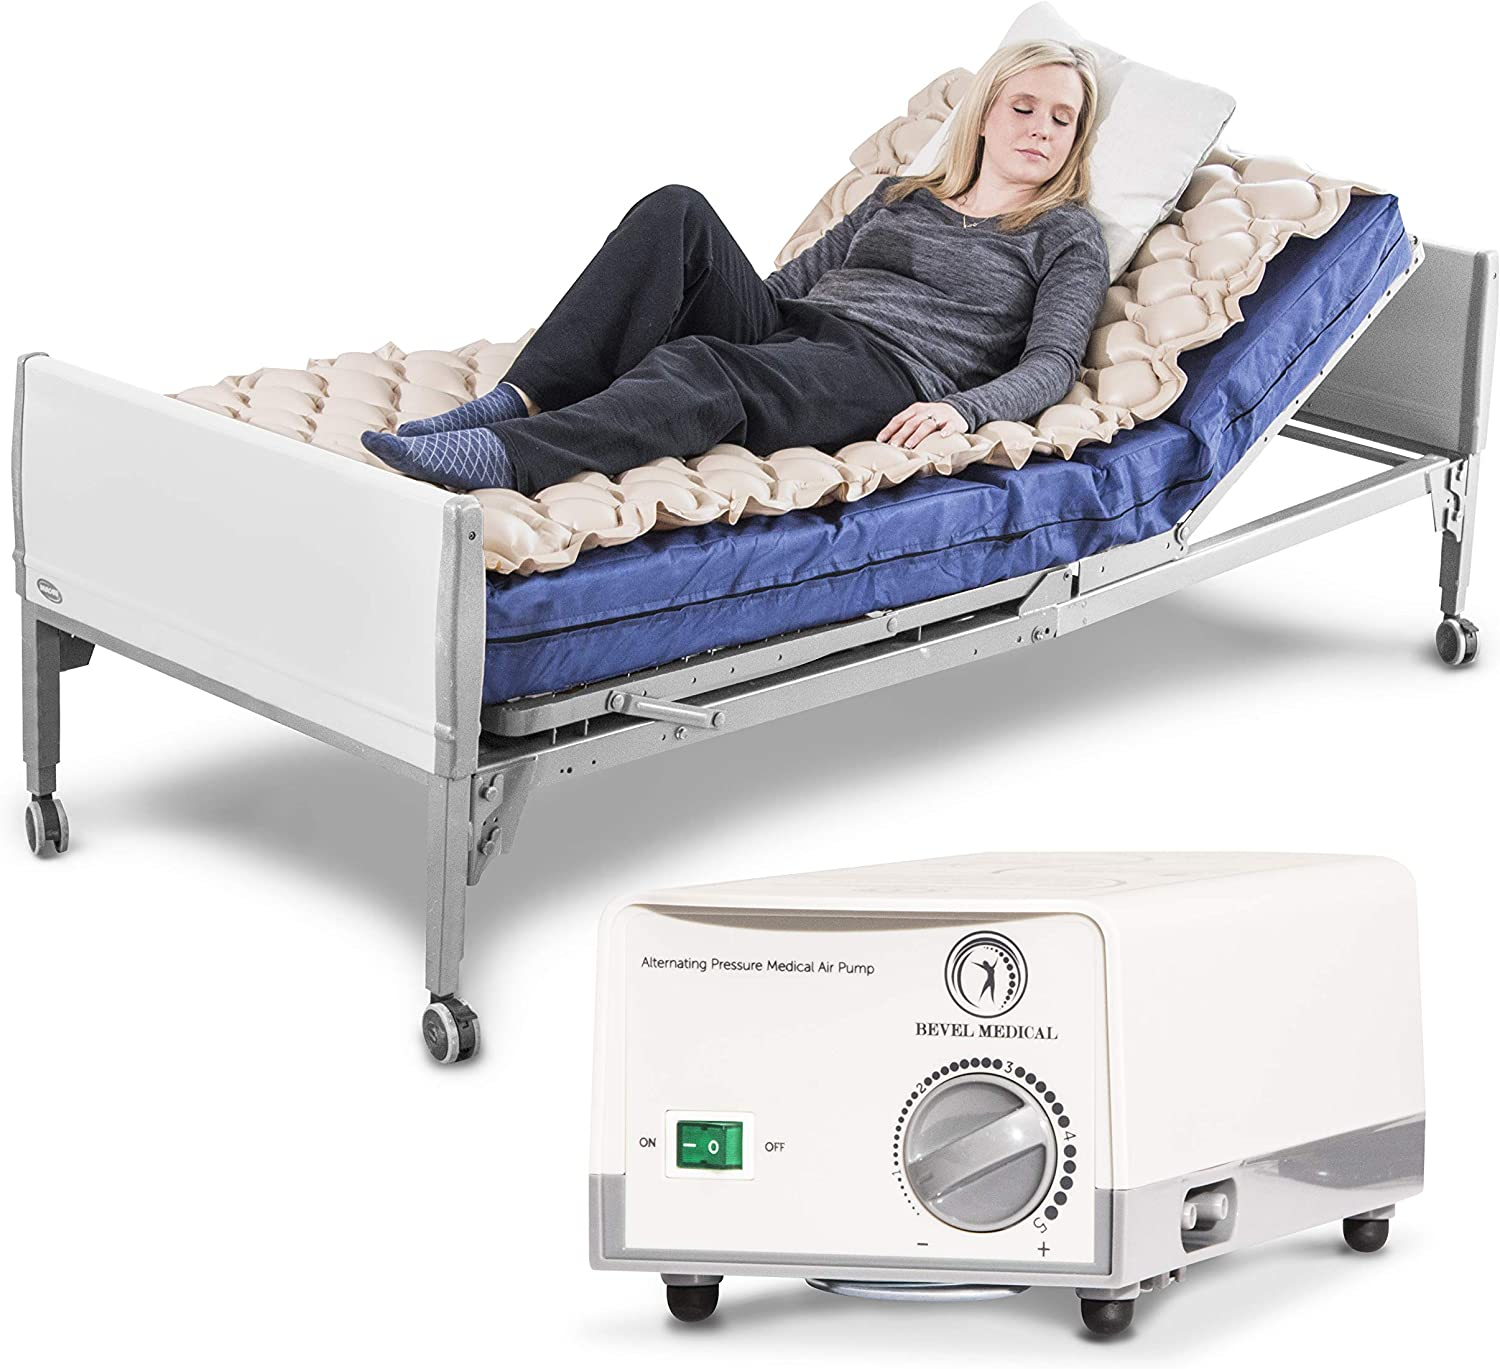 Premium Alternating Air Pressure Mattress for Medical Bed